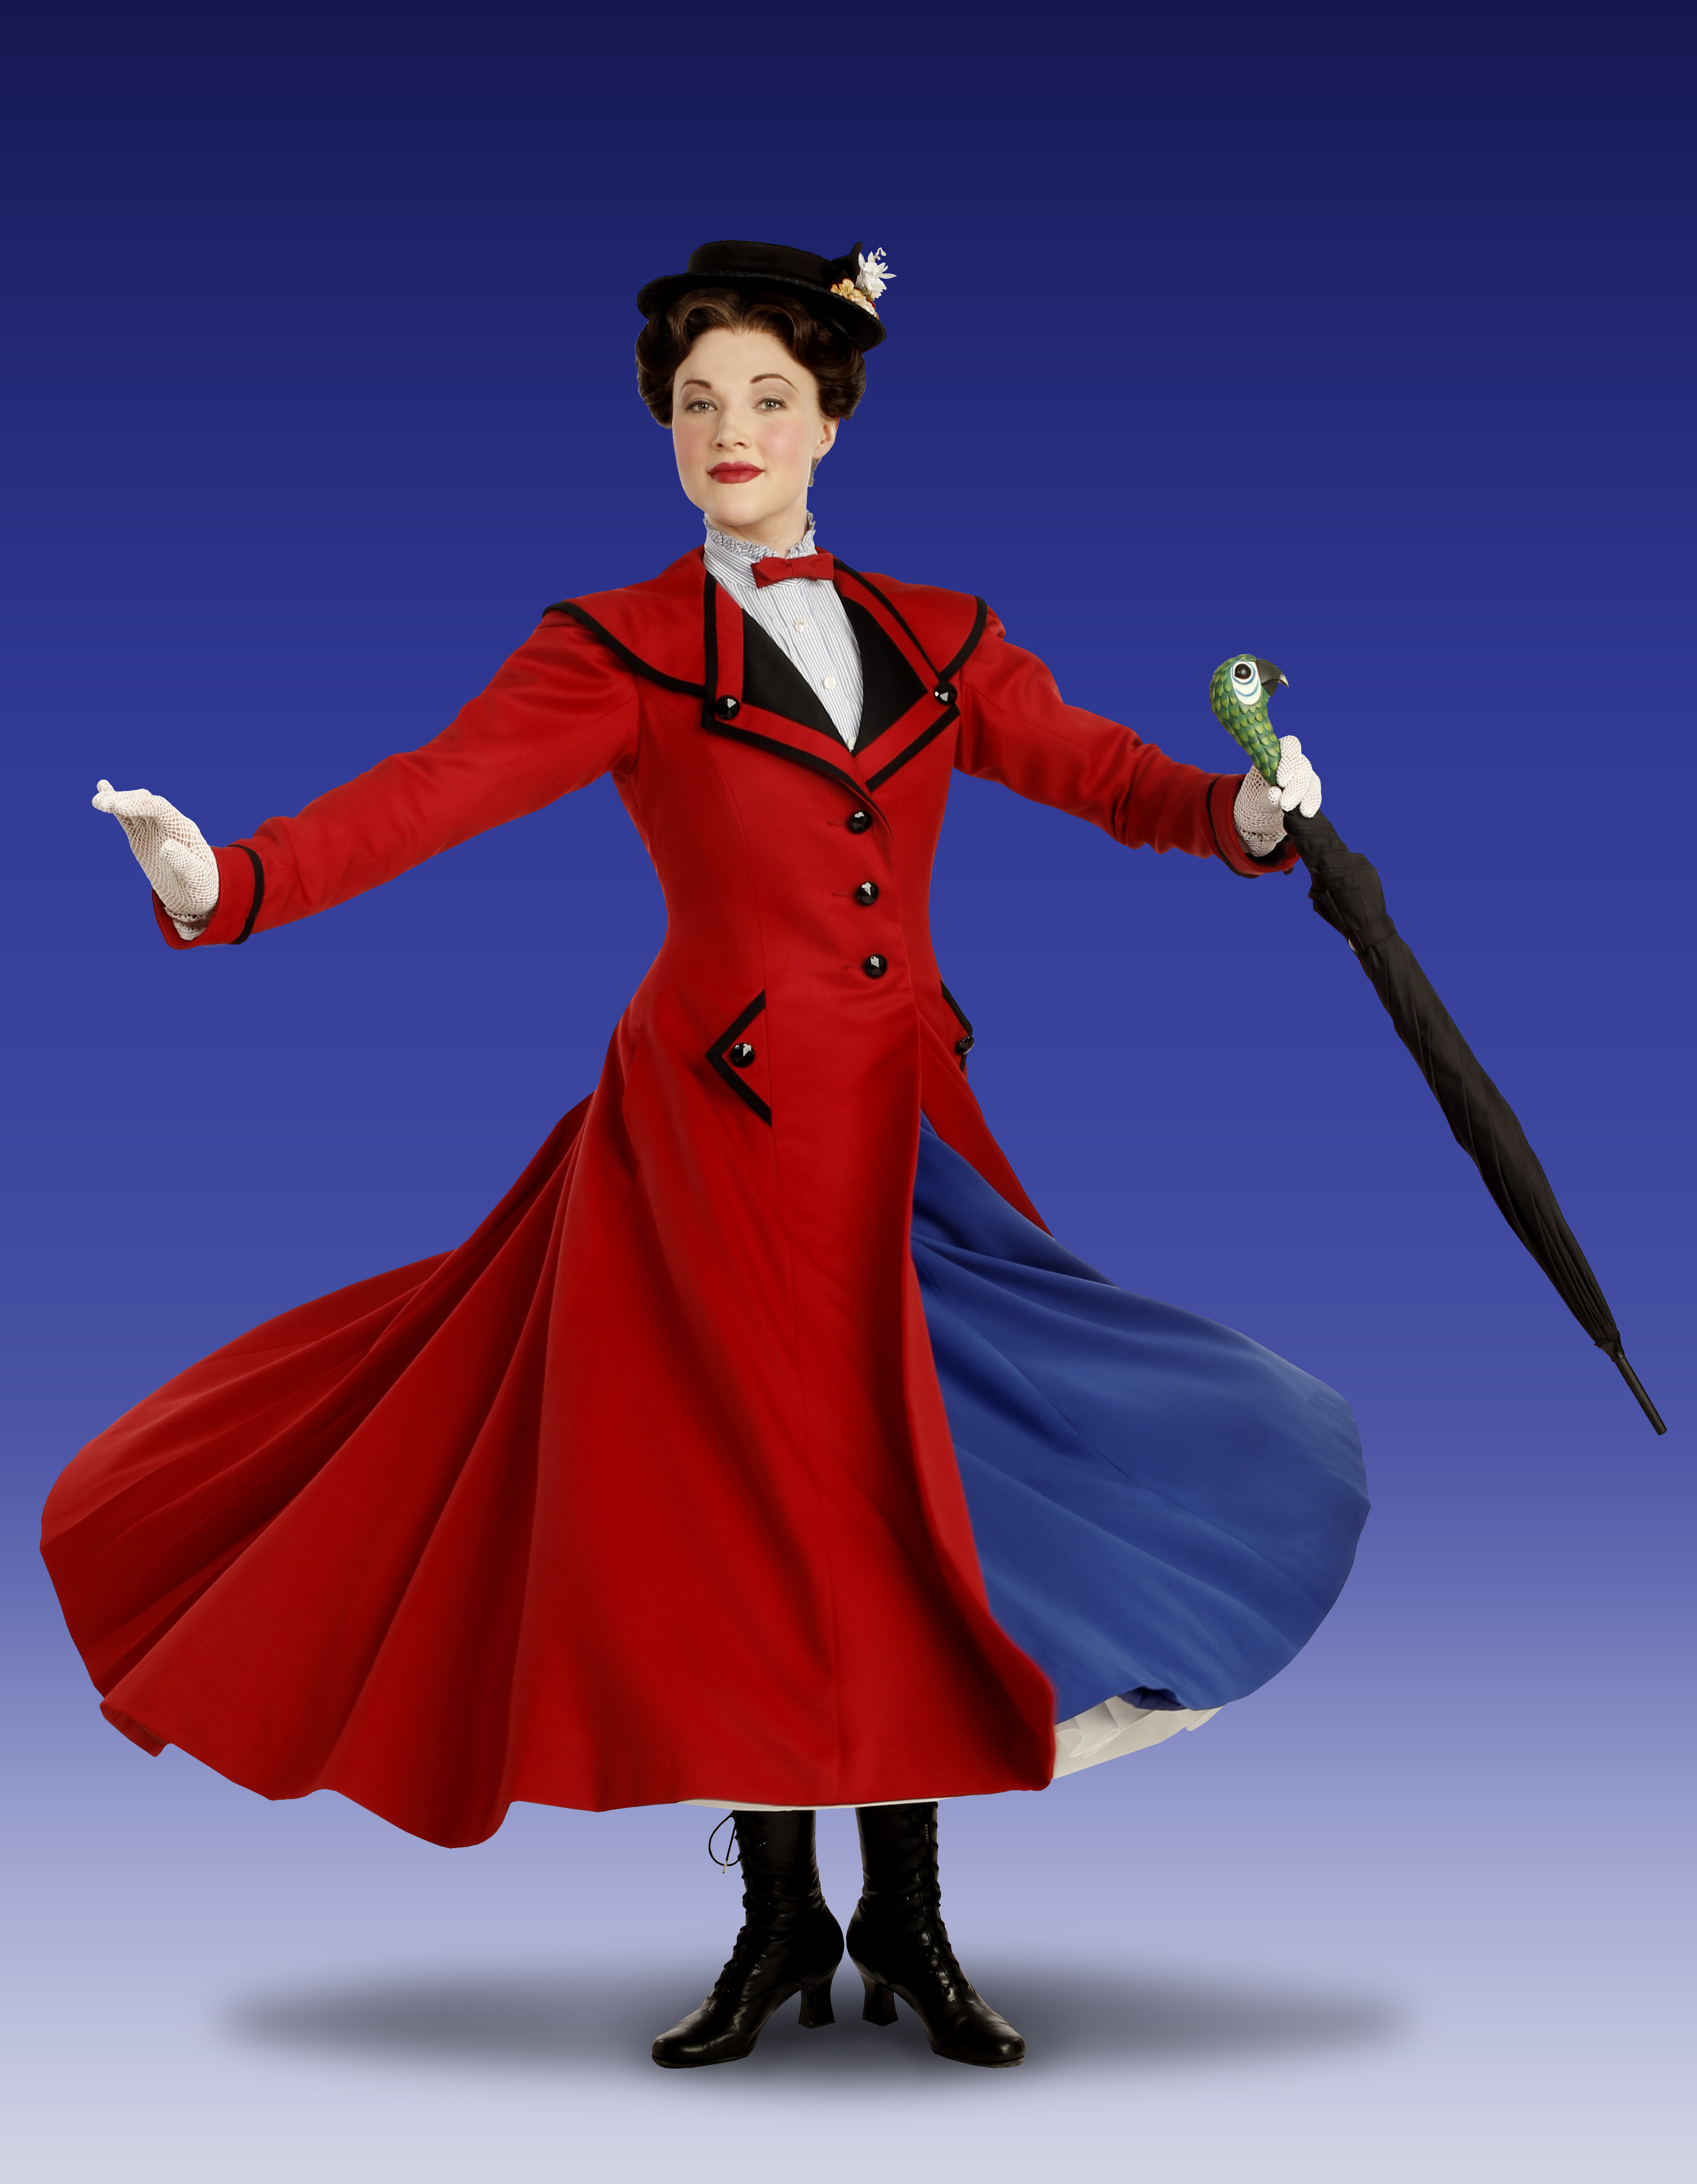 Mary poppins musical wallpapers high quality download free - Mary poppins wallpaper ...